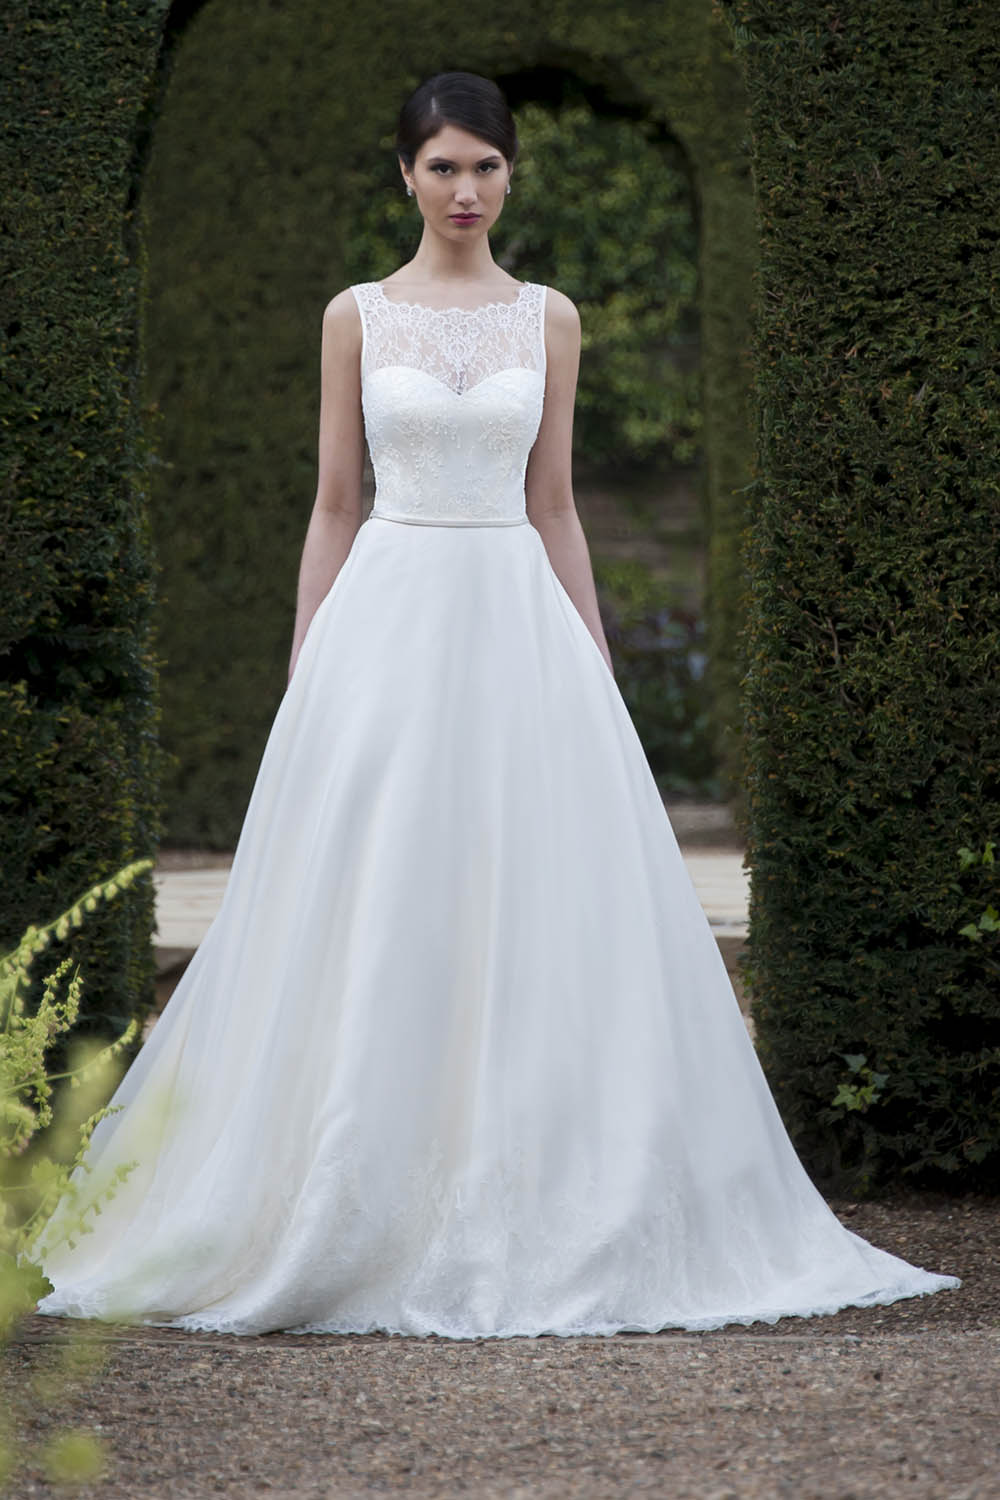 Old Fashioned Consignment For Wedding Dresses Gallery - All Wedding ...